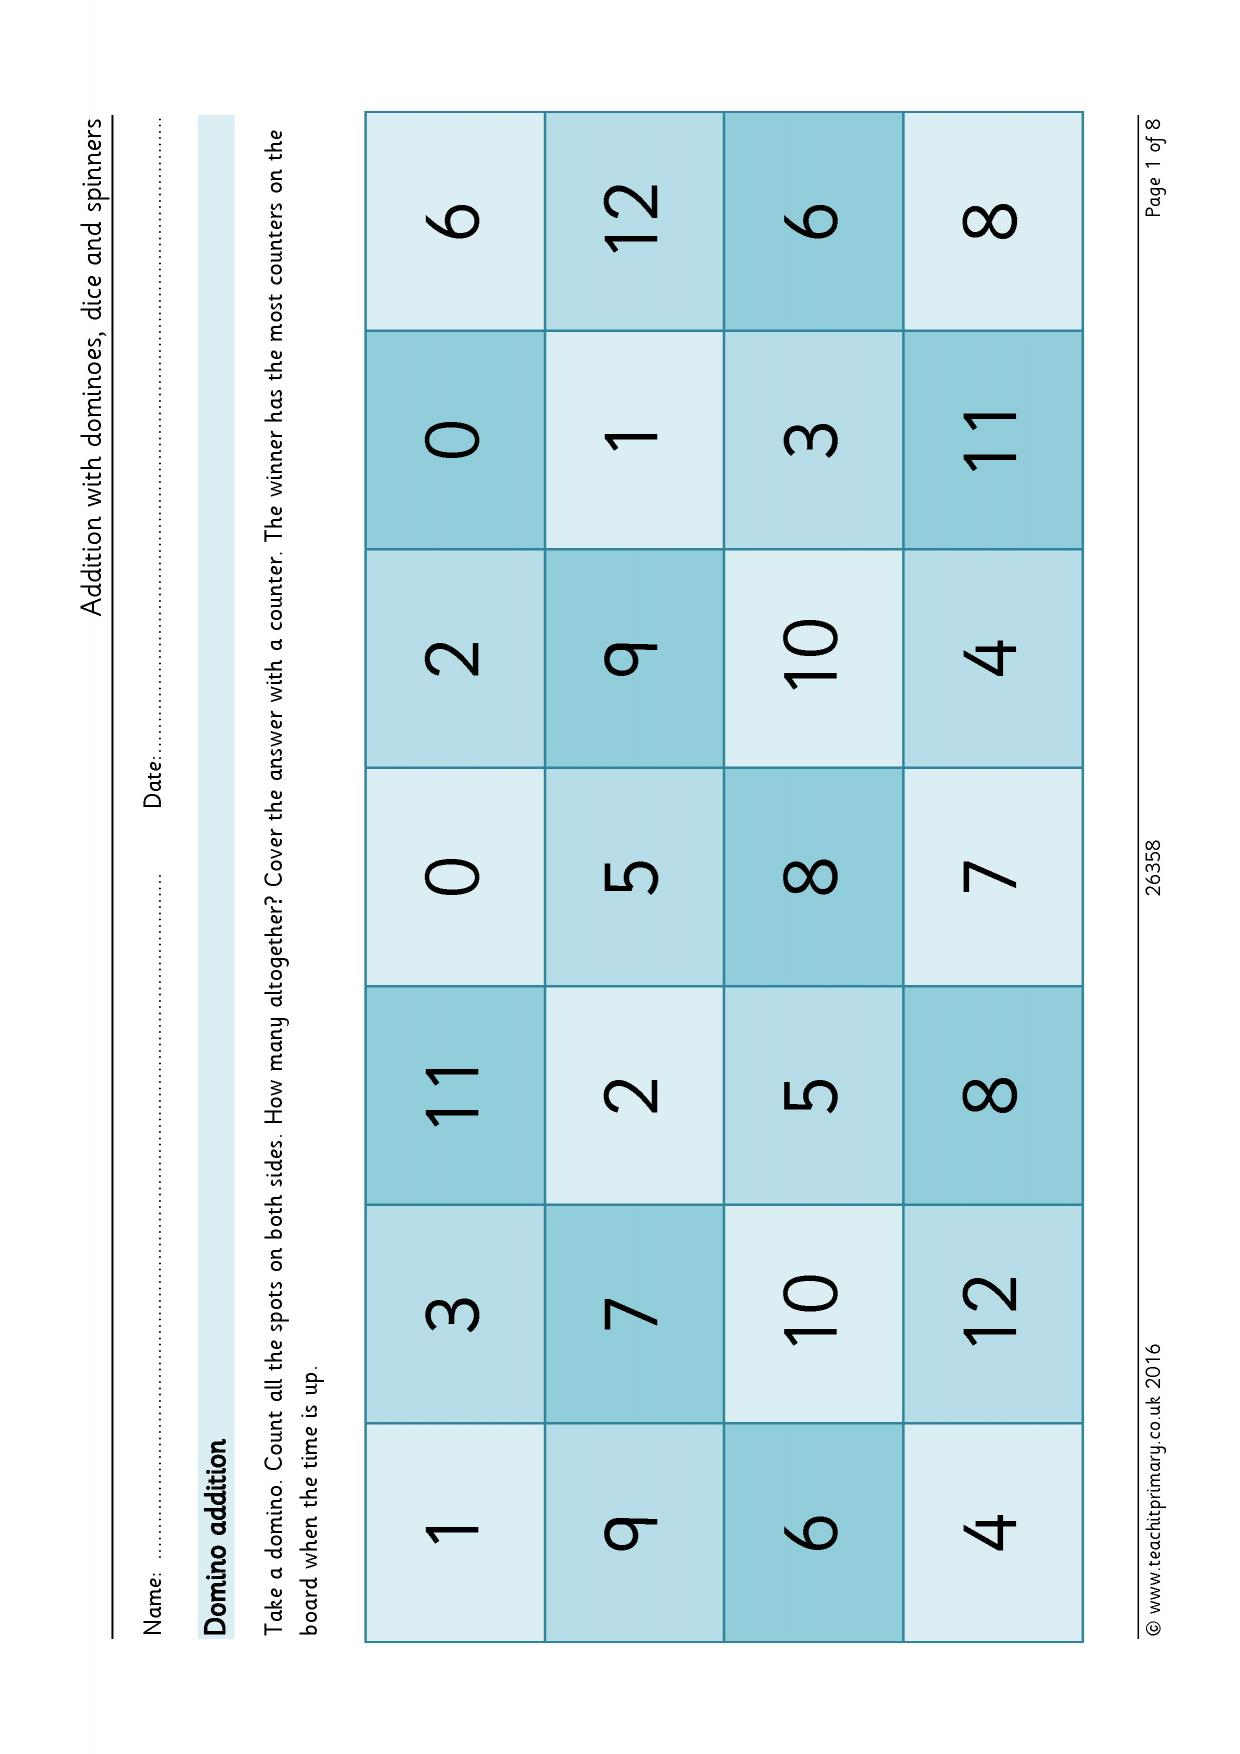 Addition worksheets ks2 302736 - aks-flight.info